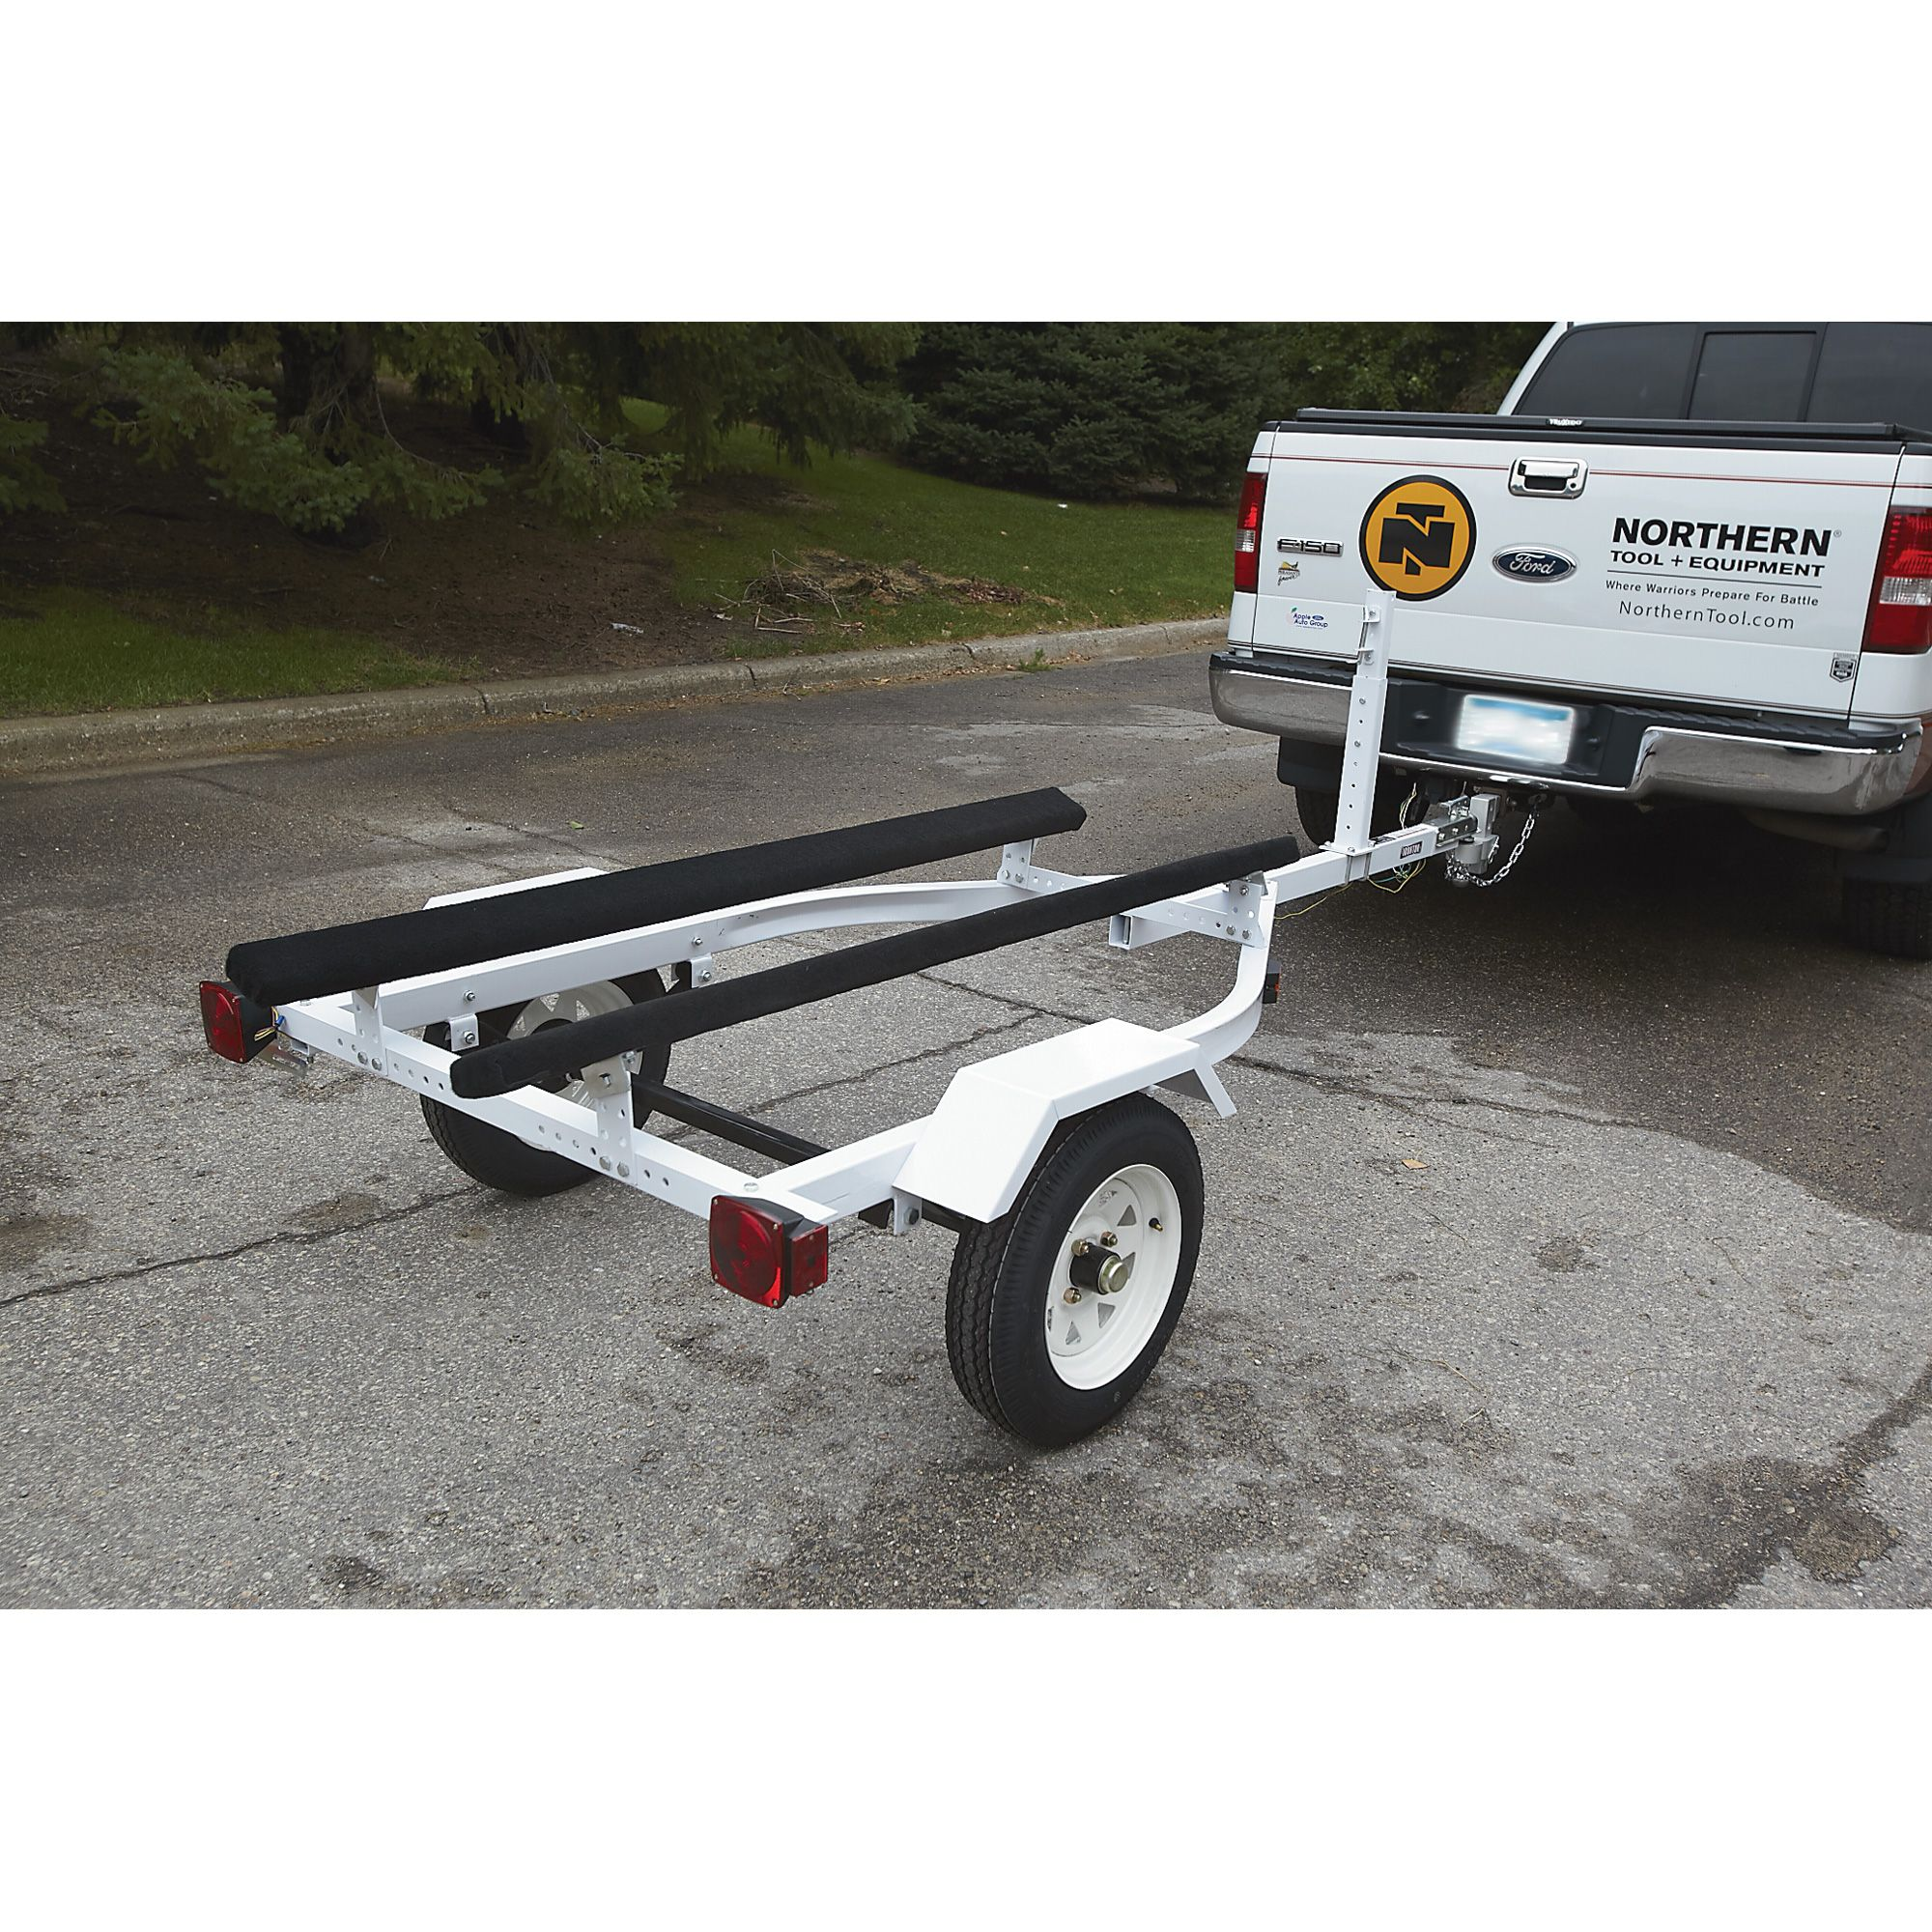 Ironton Jet Ski And Personal Watercraft Trailer Kit 610 Lb Load Boat Wiring Diagram Dot The Allows You To Easily Transport Unload Your